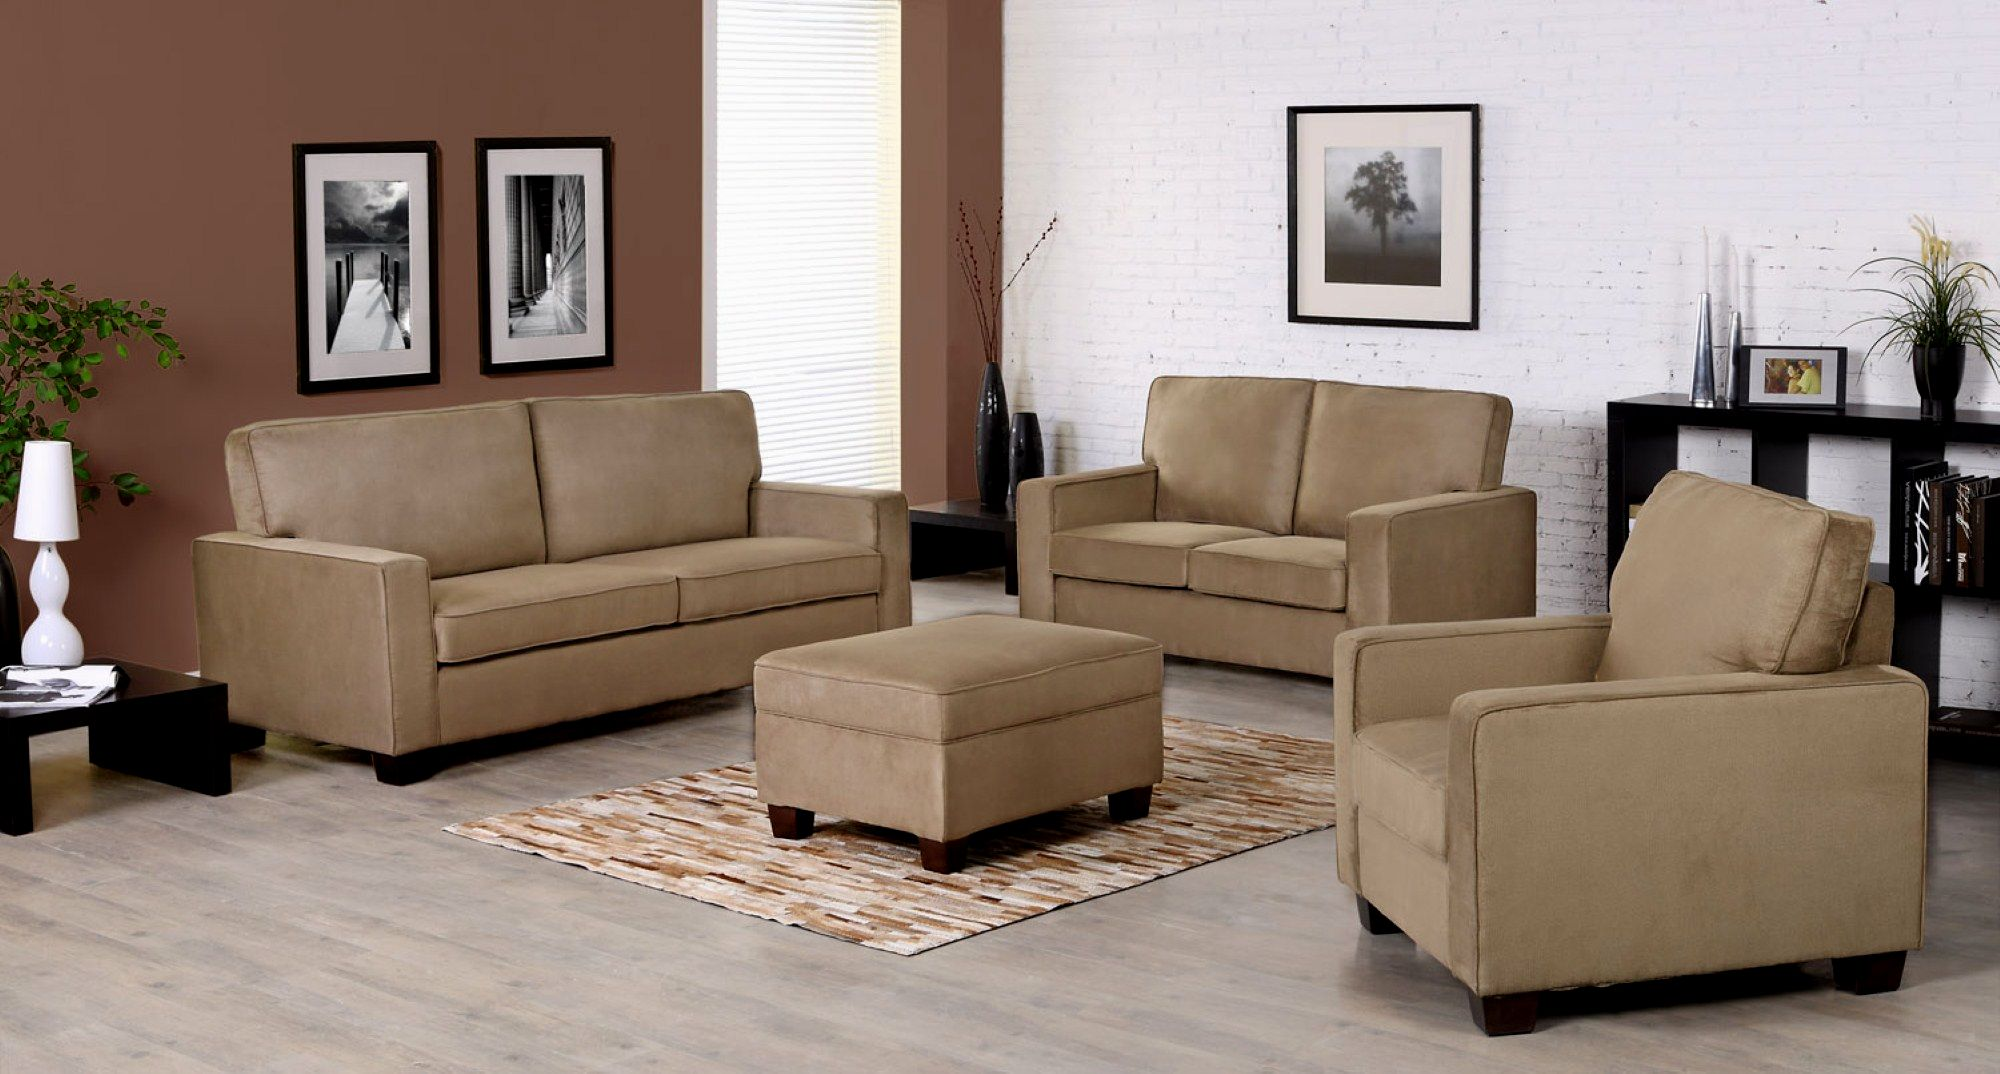 wonderful home theater sectional sofa decoration-Lovely Home theater Sectional sofa Inspiration